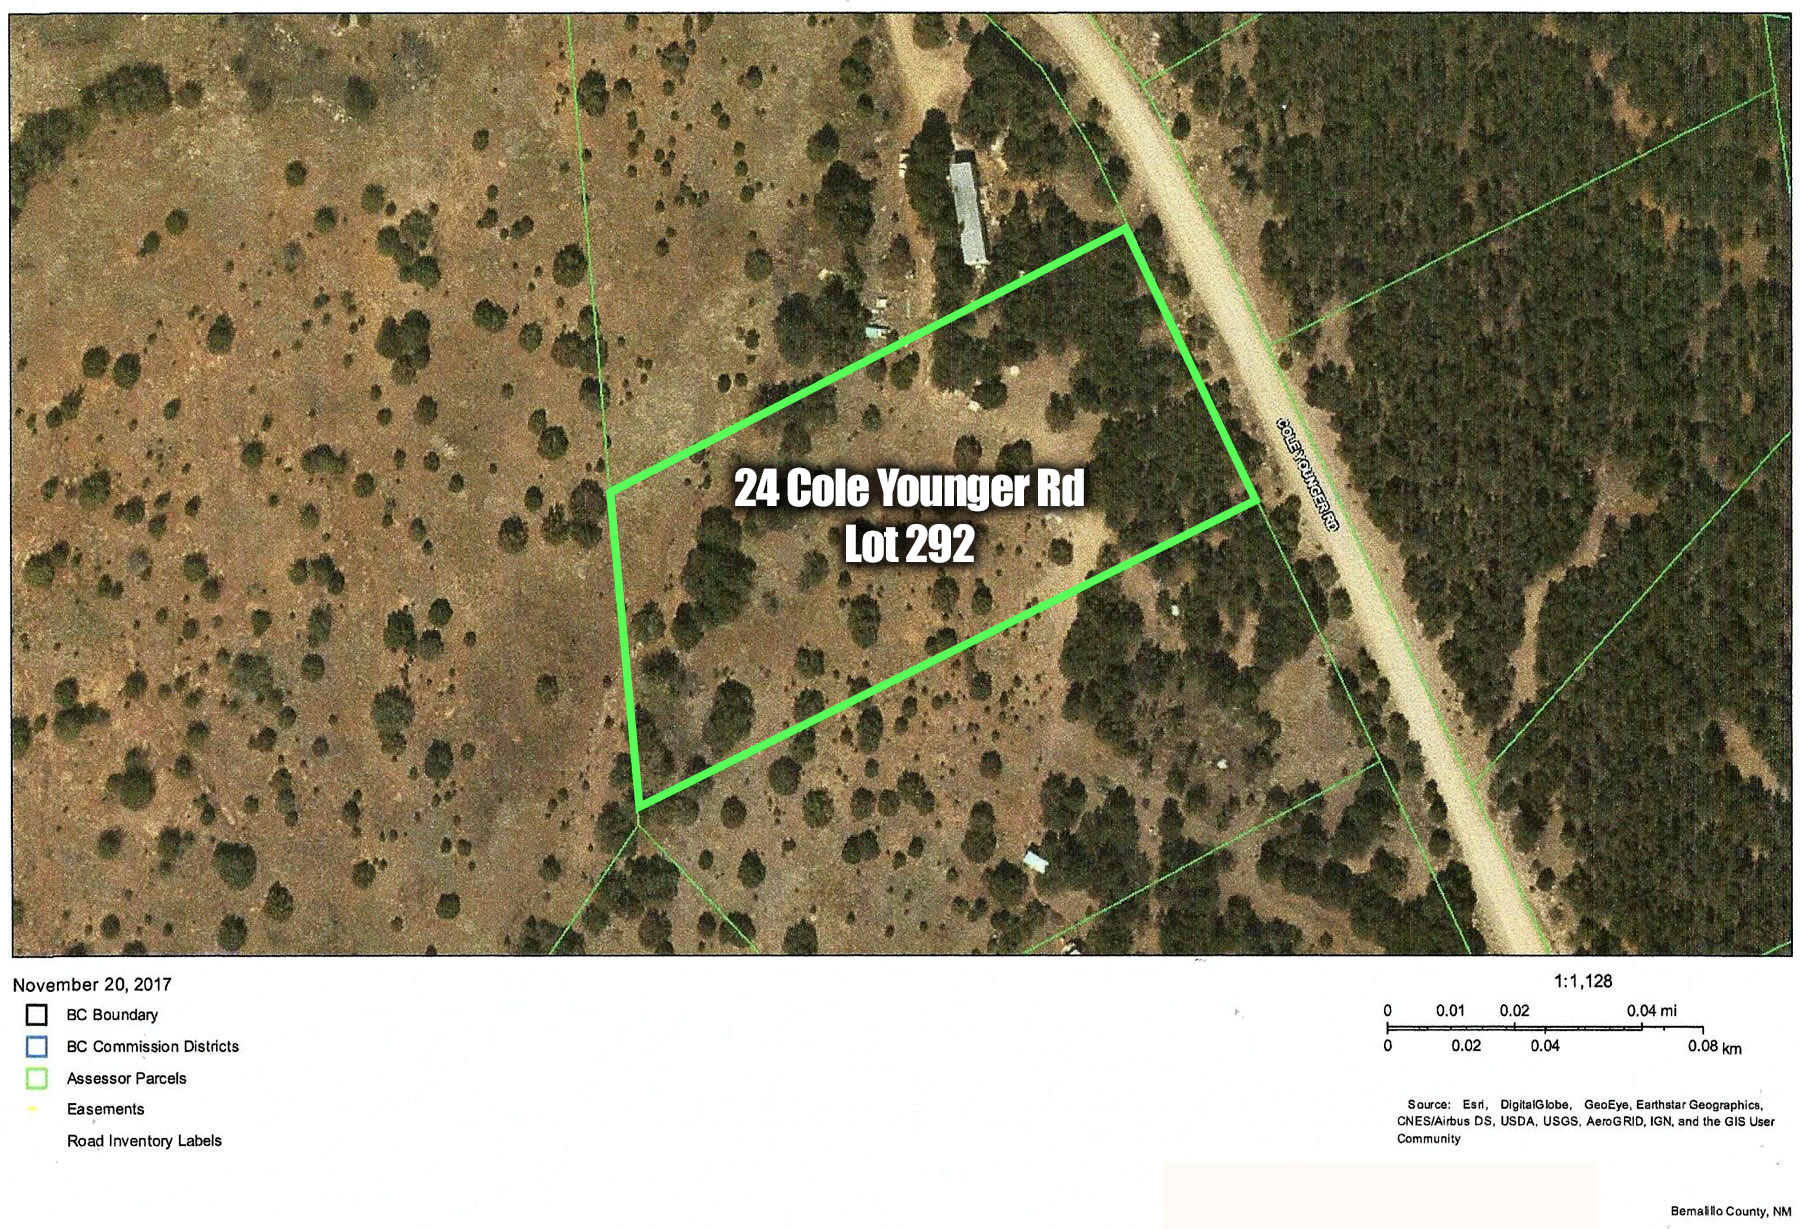 24 Cole Younger Rd - Sundance Mountain Ranches